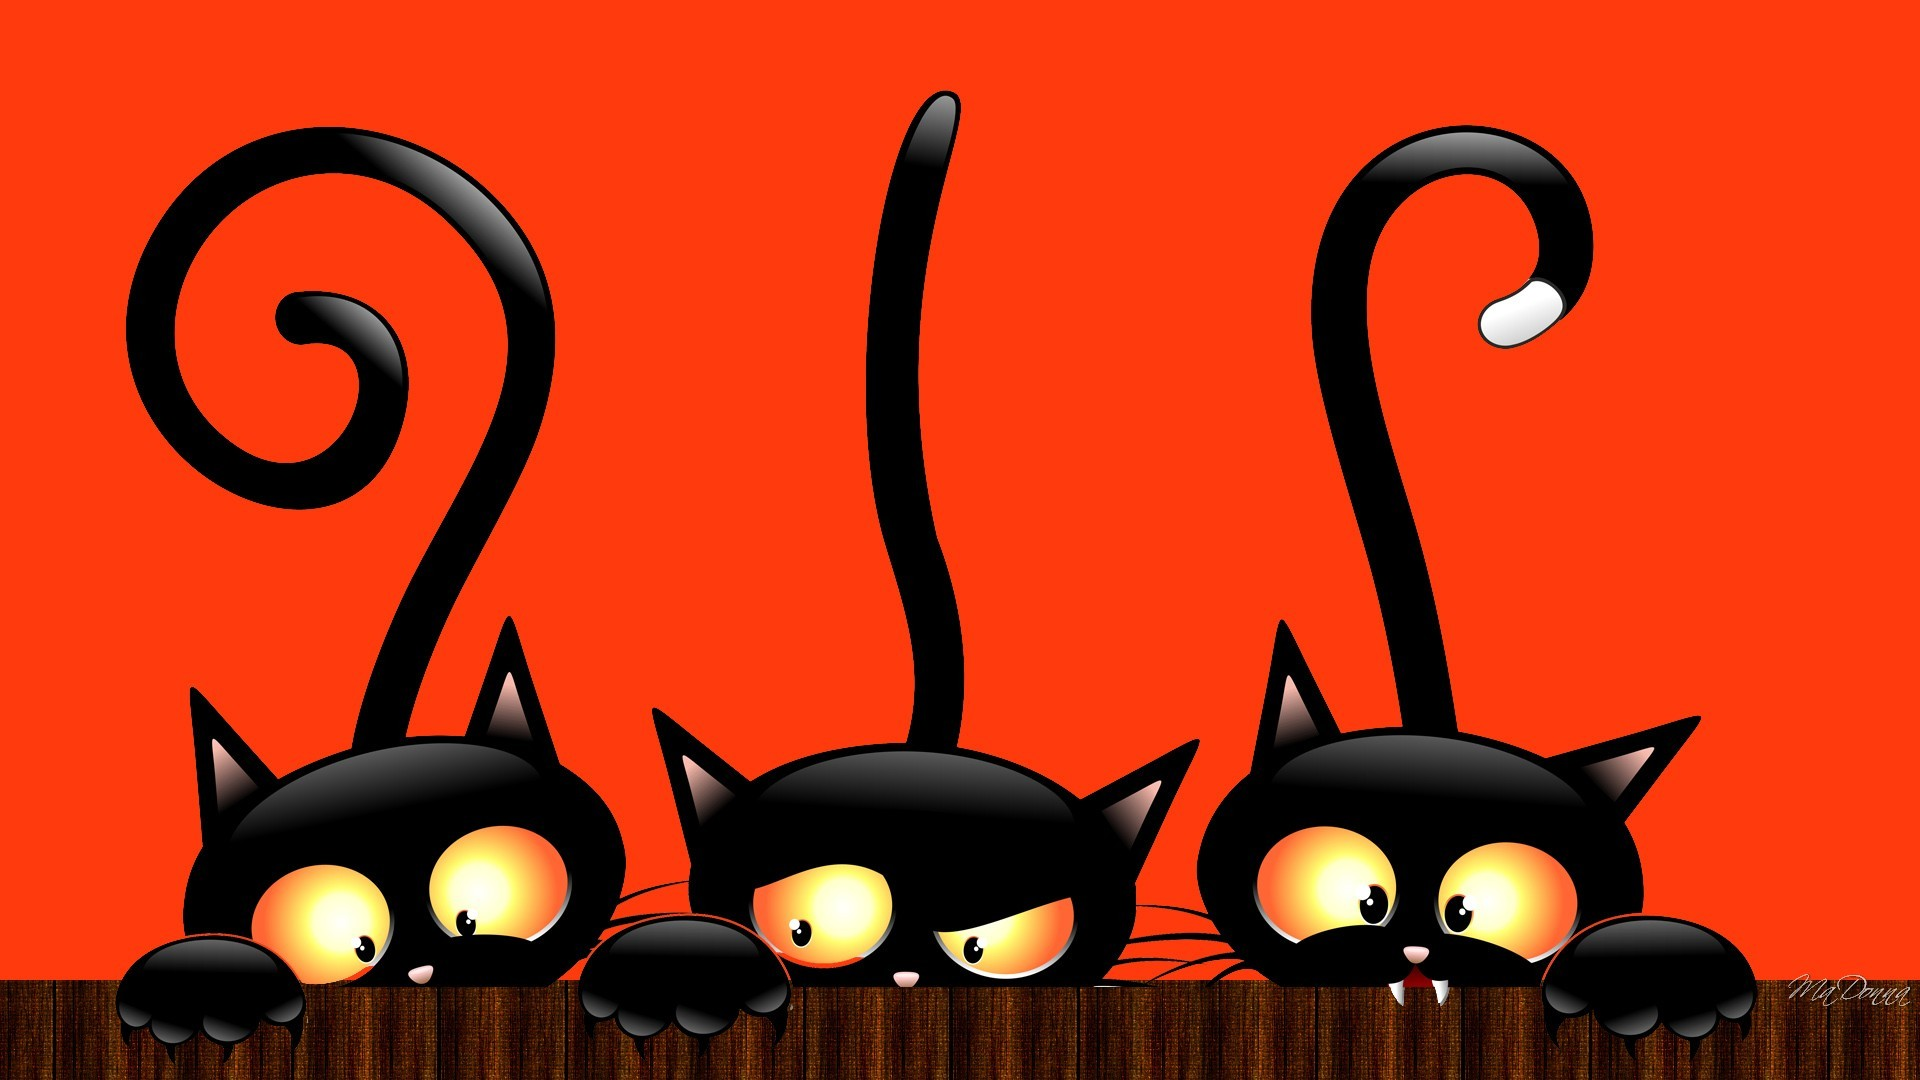 cute halloween wallpaper ·① download free beautiful hd wallpapers